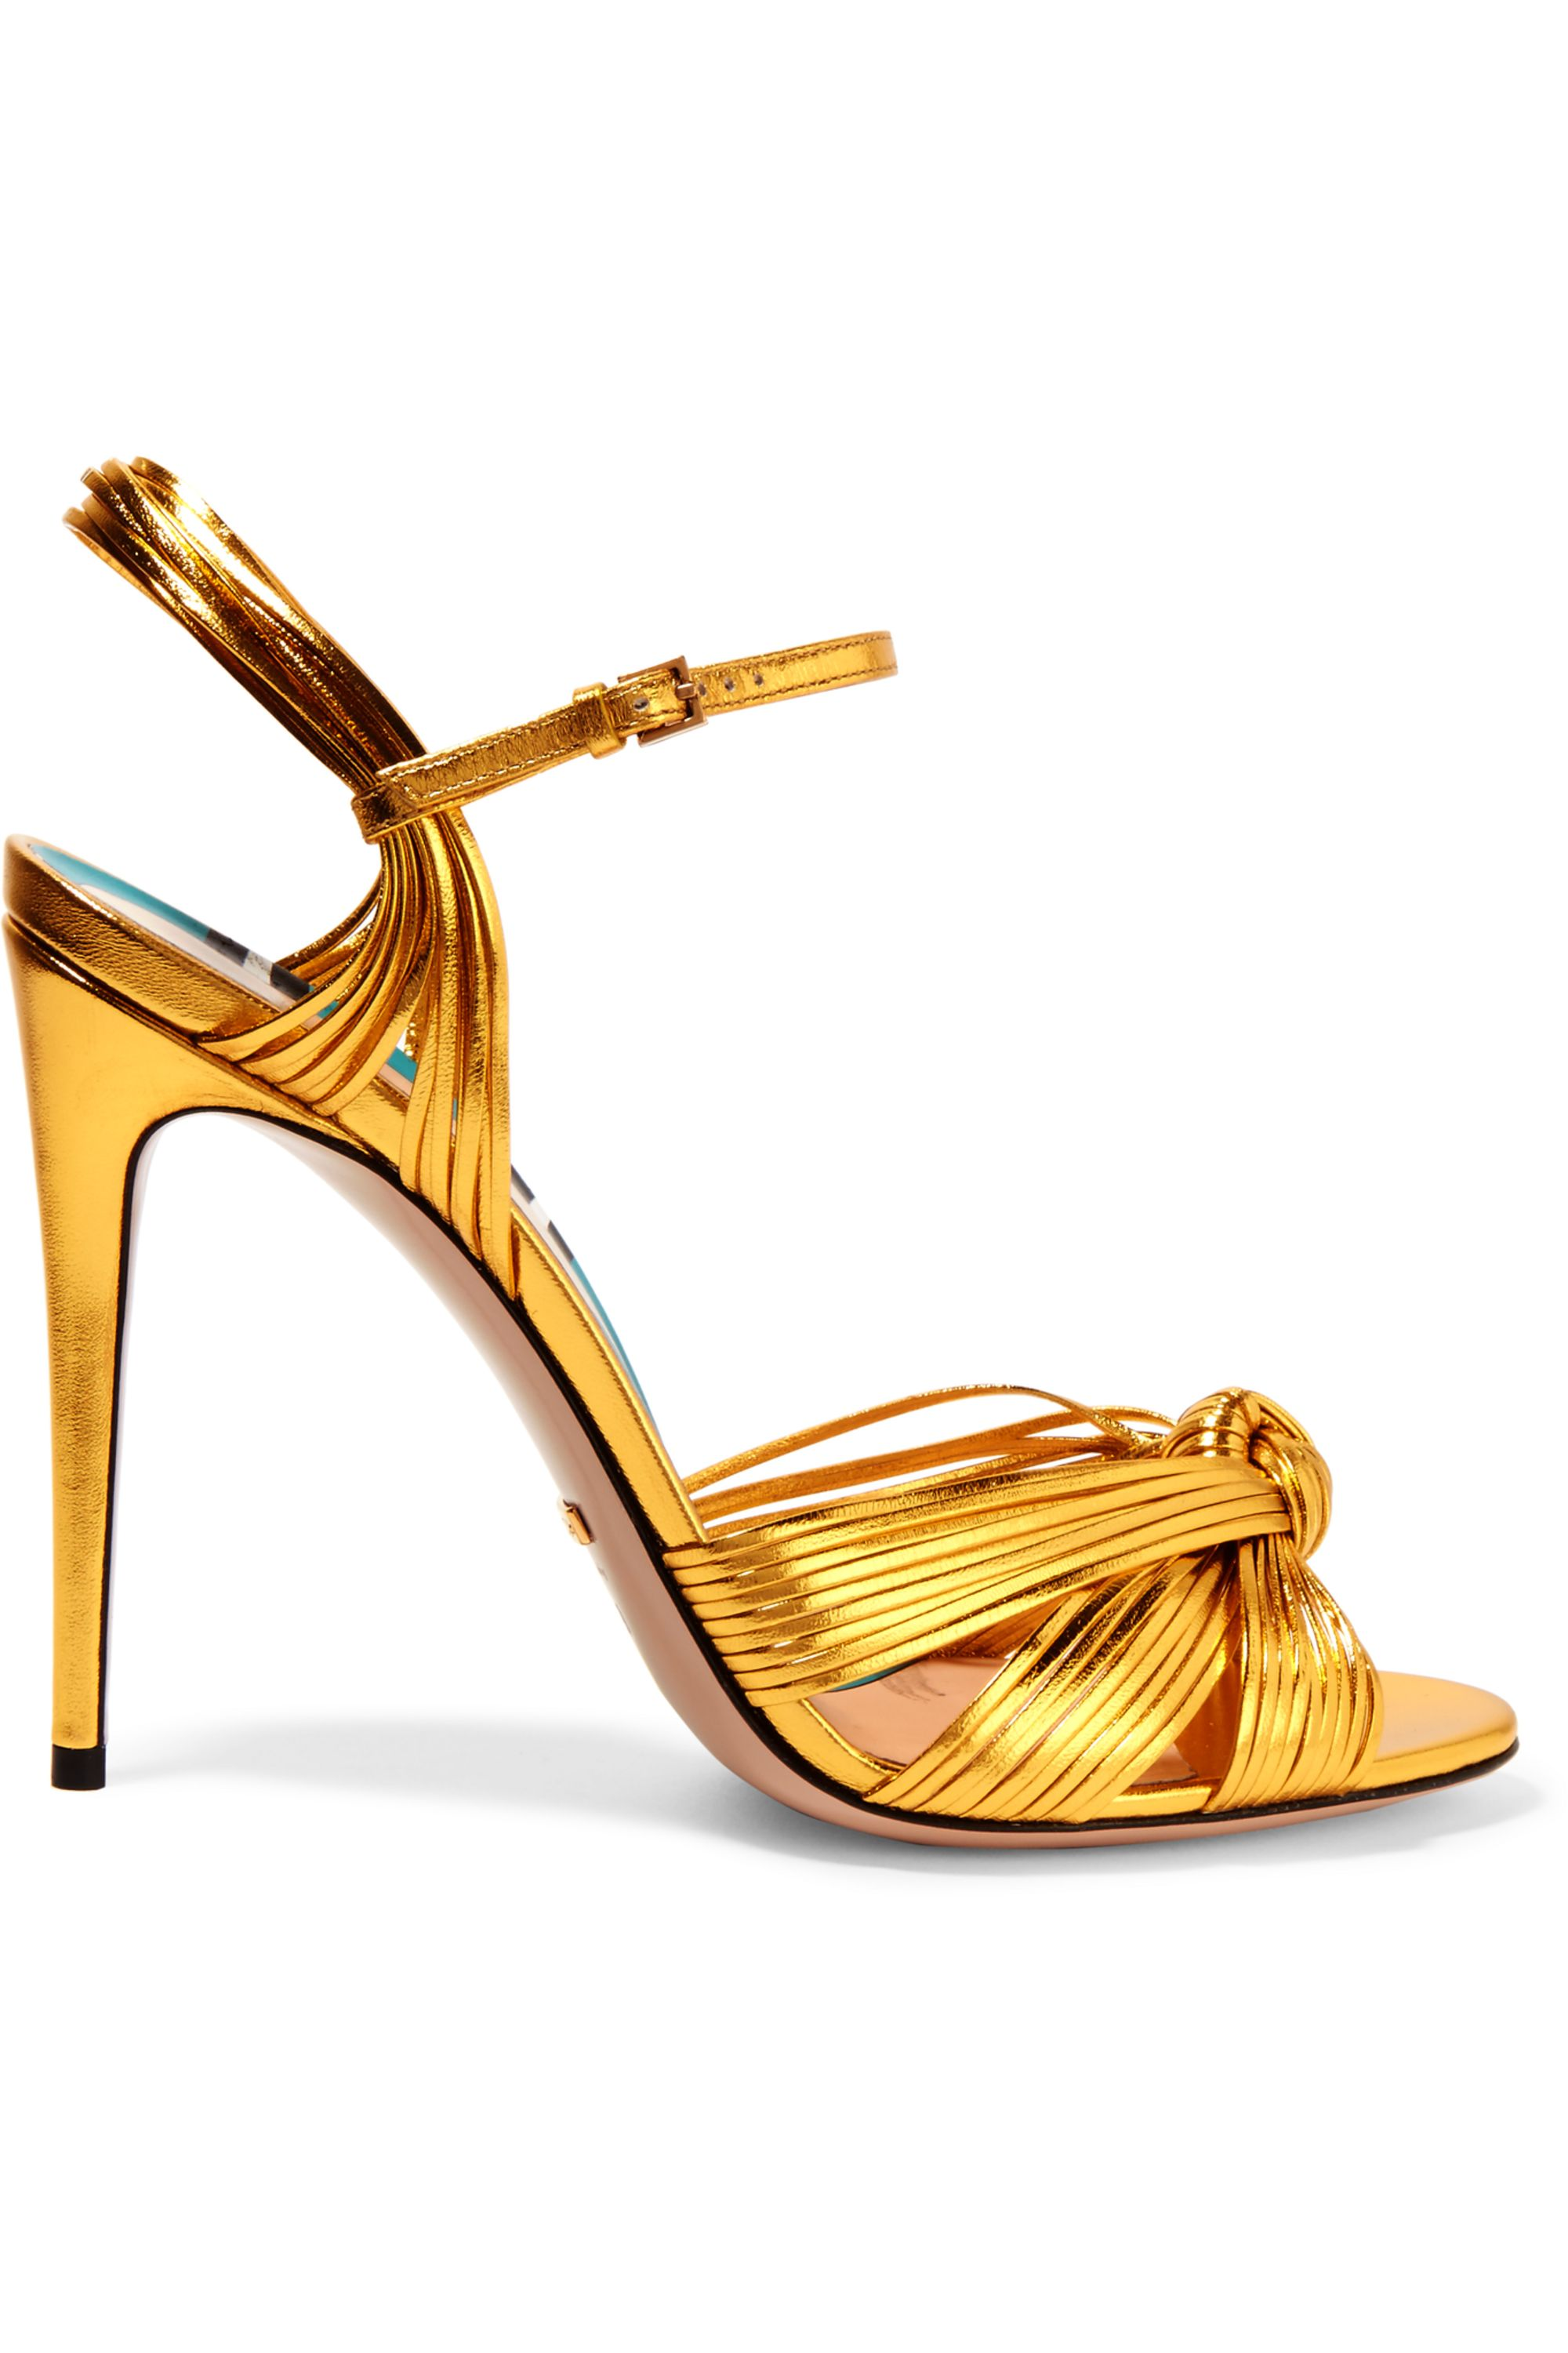 Gold Metallic leather sandals   Gucci